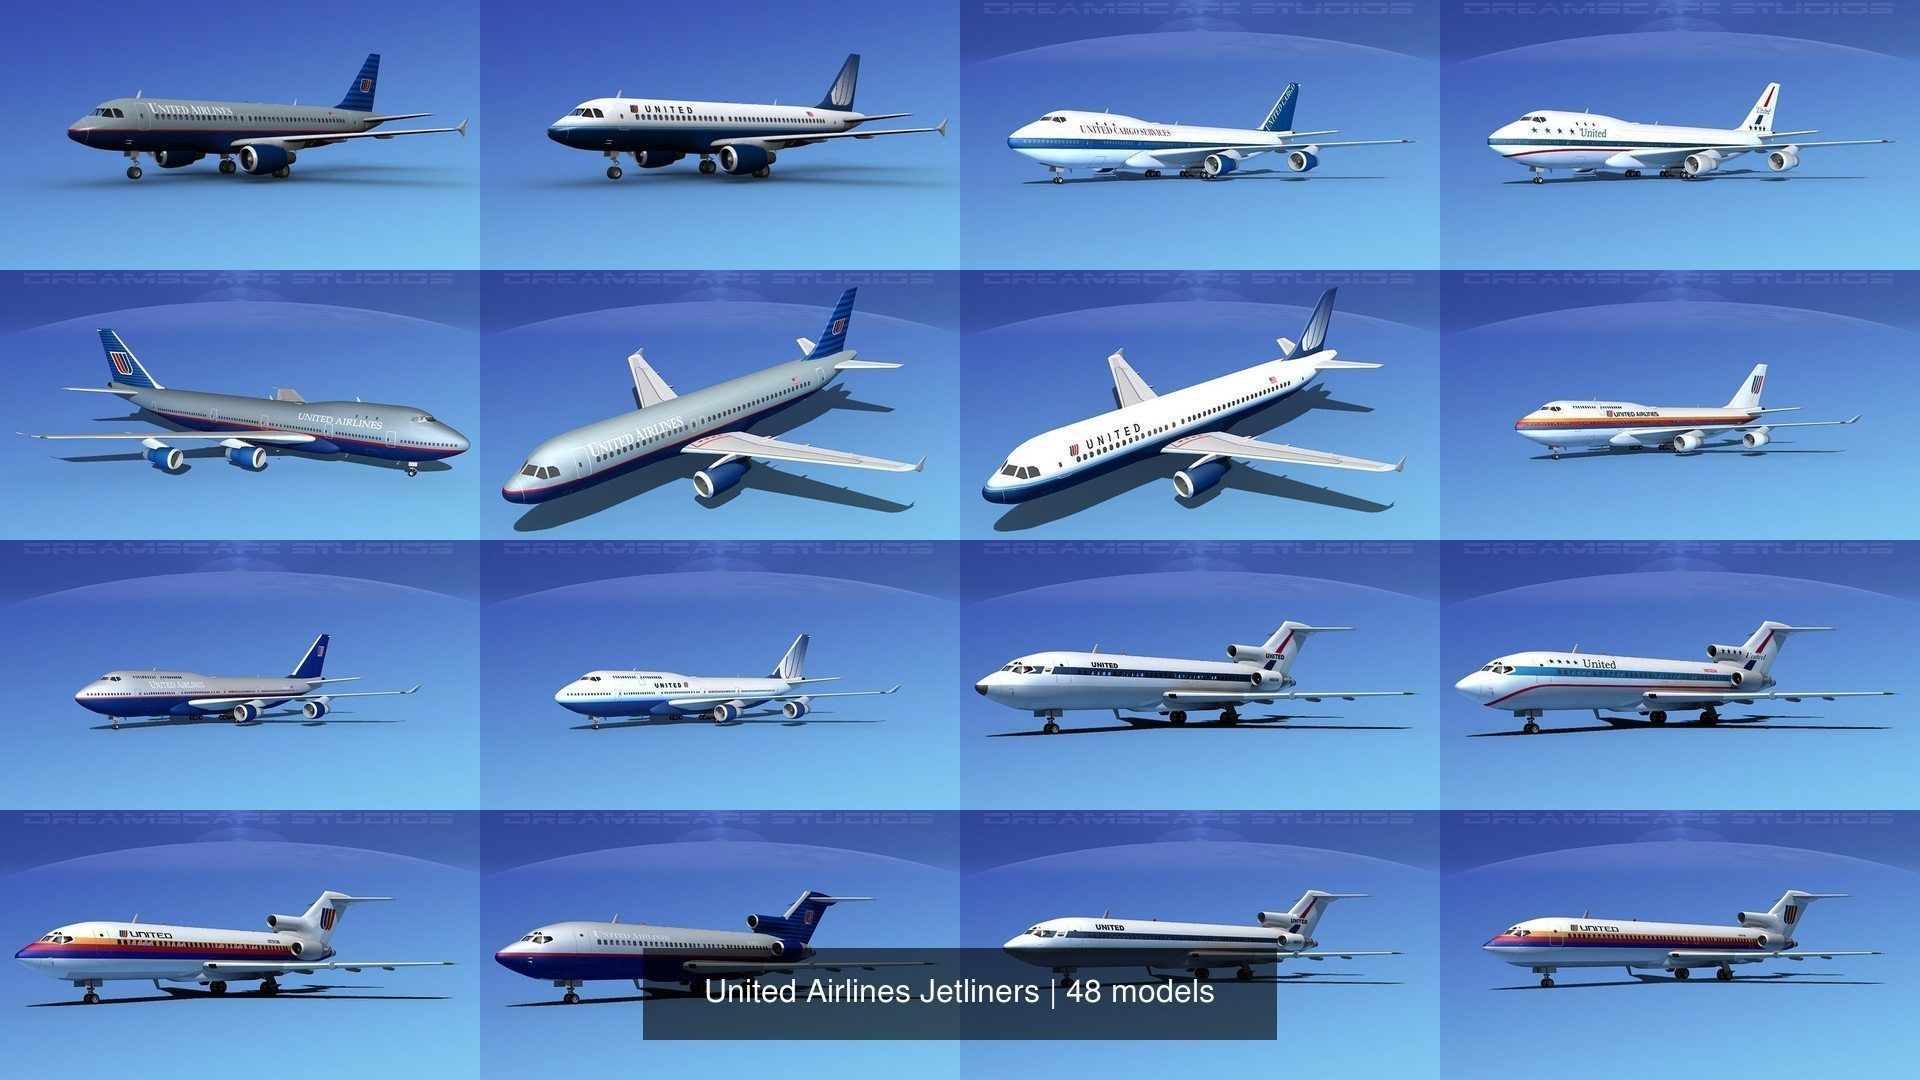 48 United Airlines Jetliners